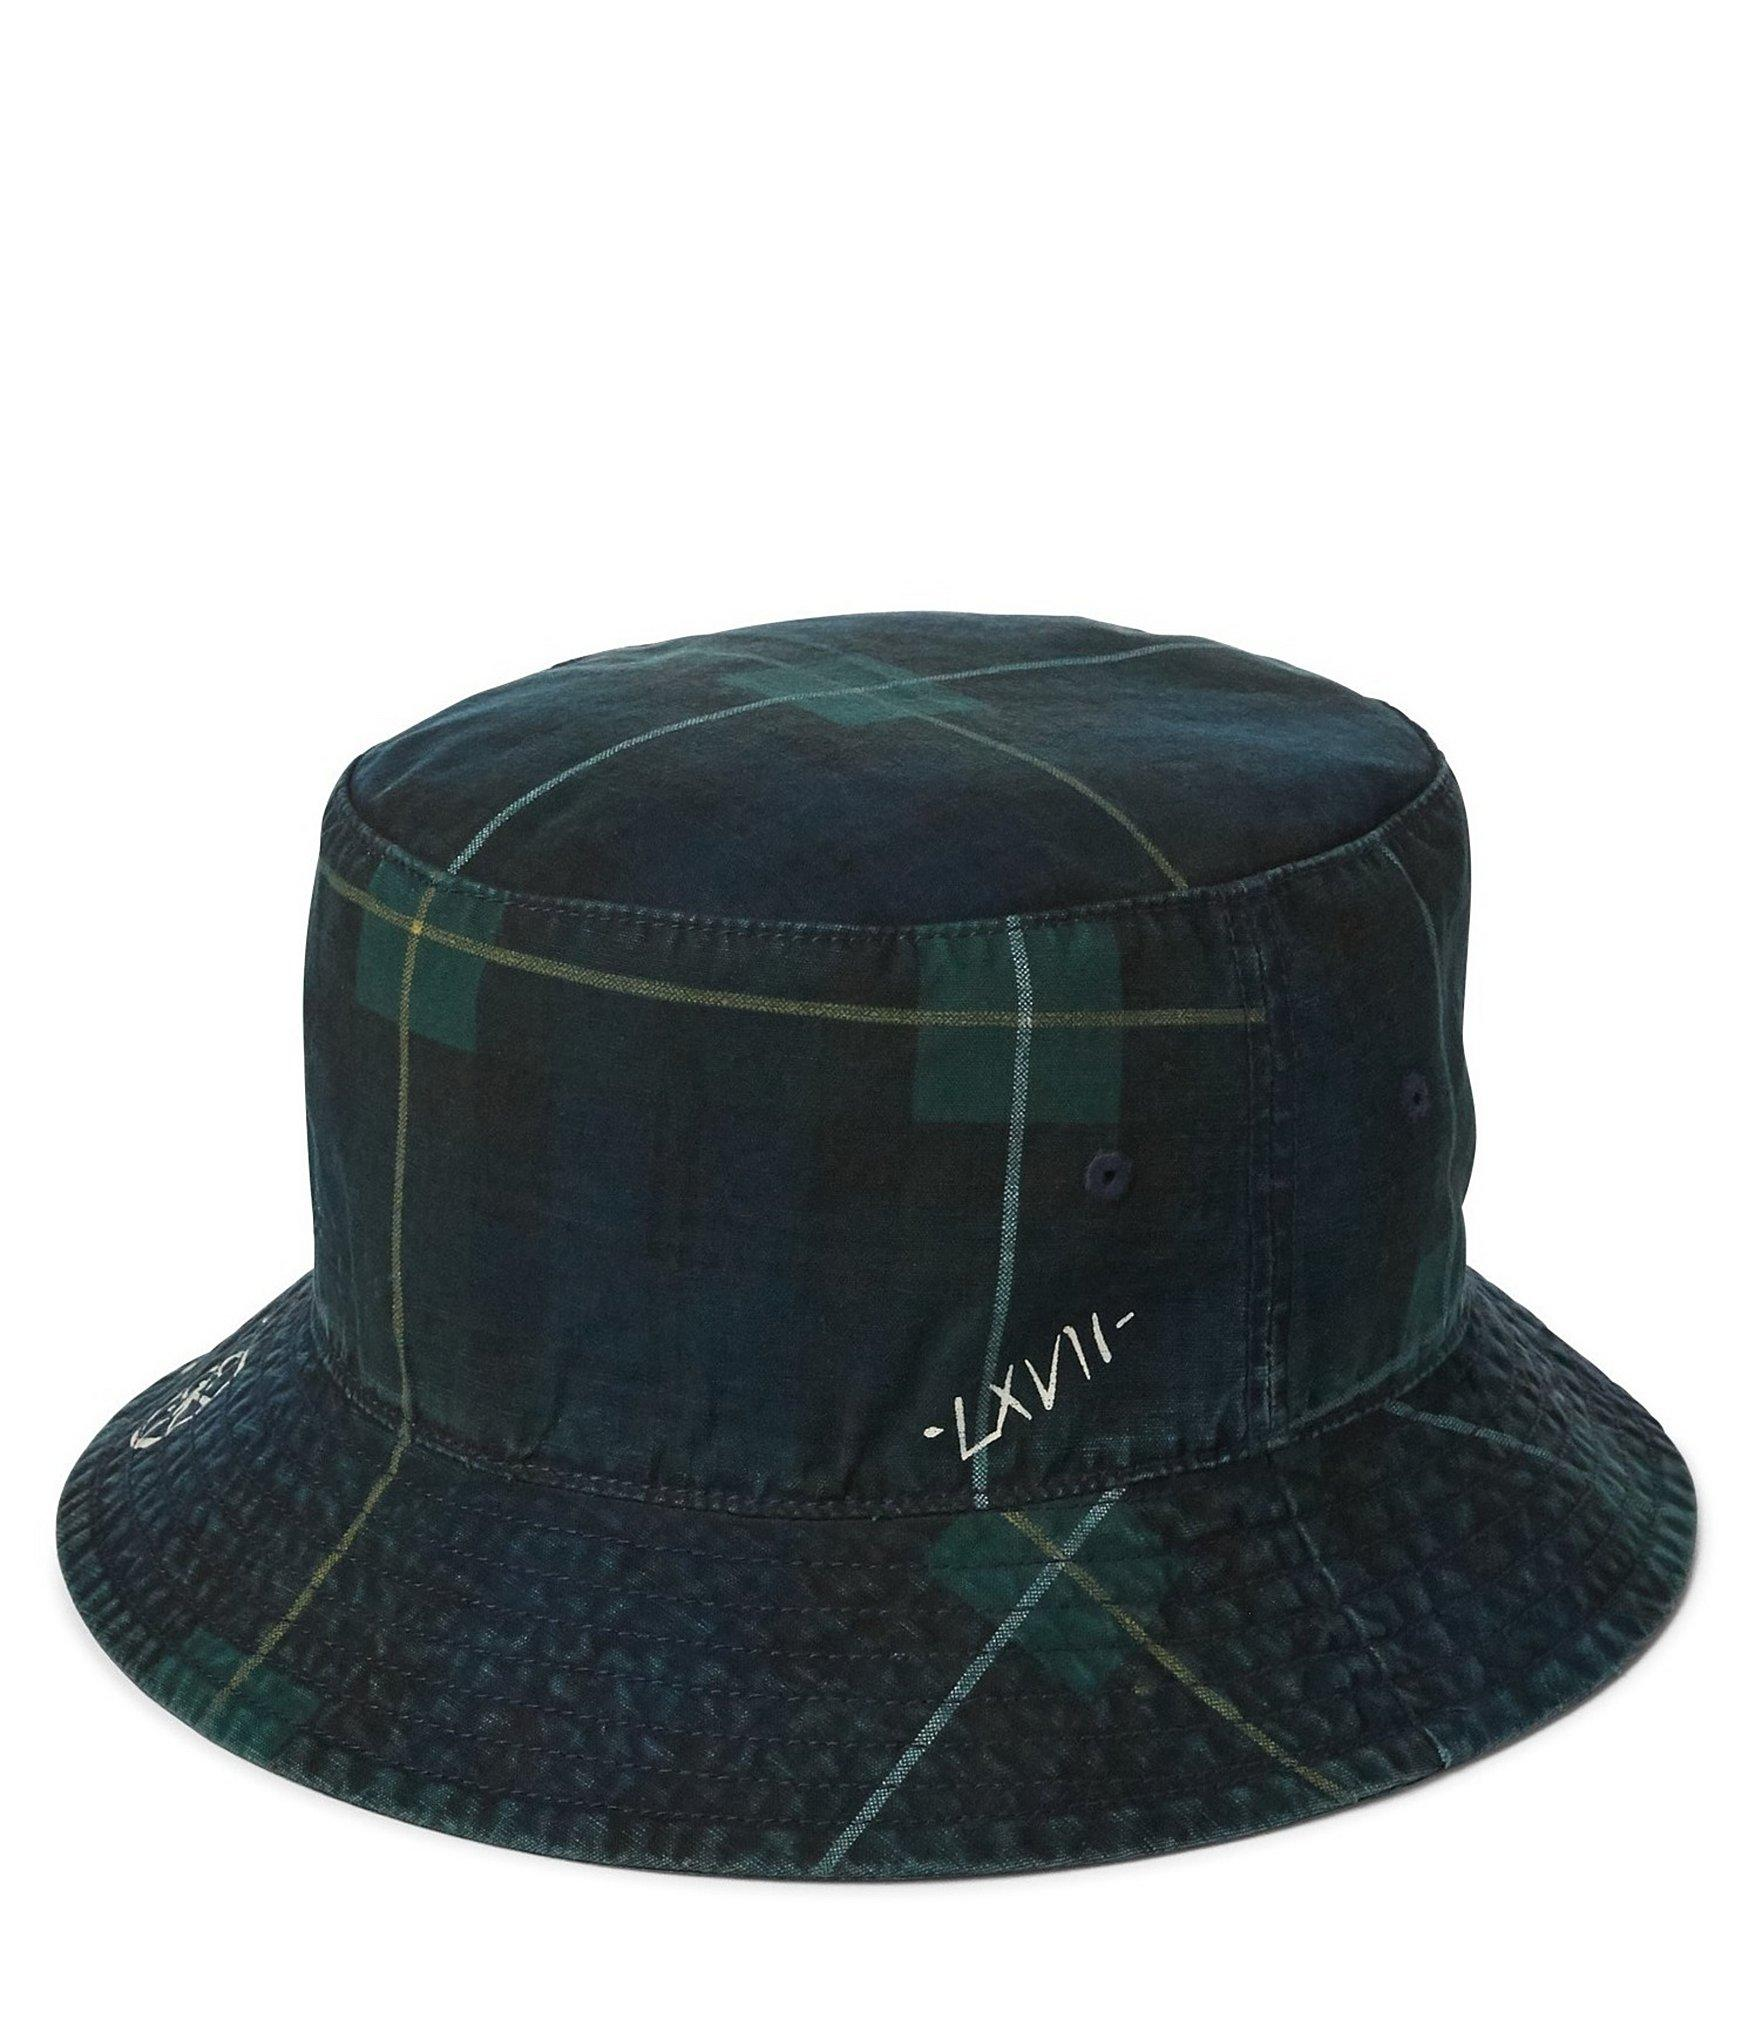 76f172e0da7c7 Polo Ralph Lauren - Green Yale Bucket Hat for Men - Lyst. View fullscreen